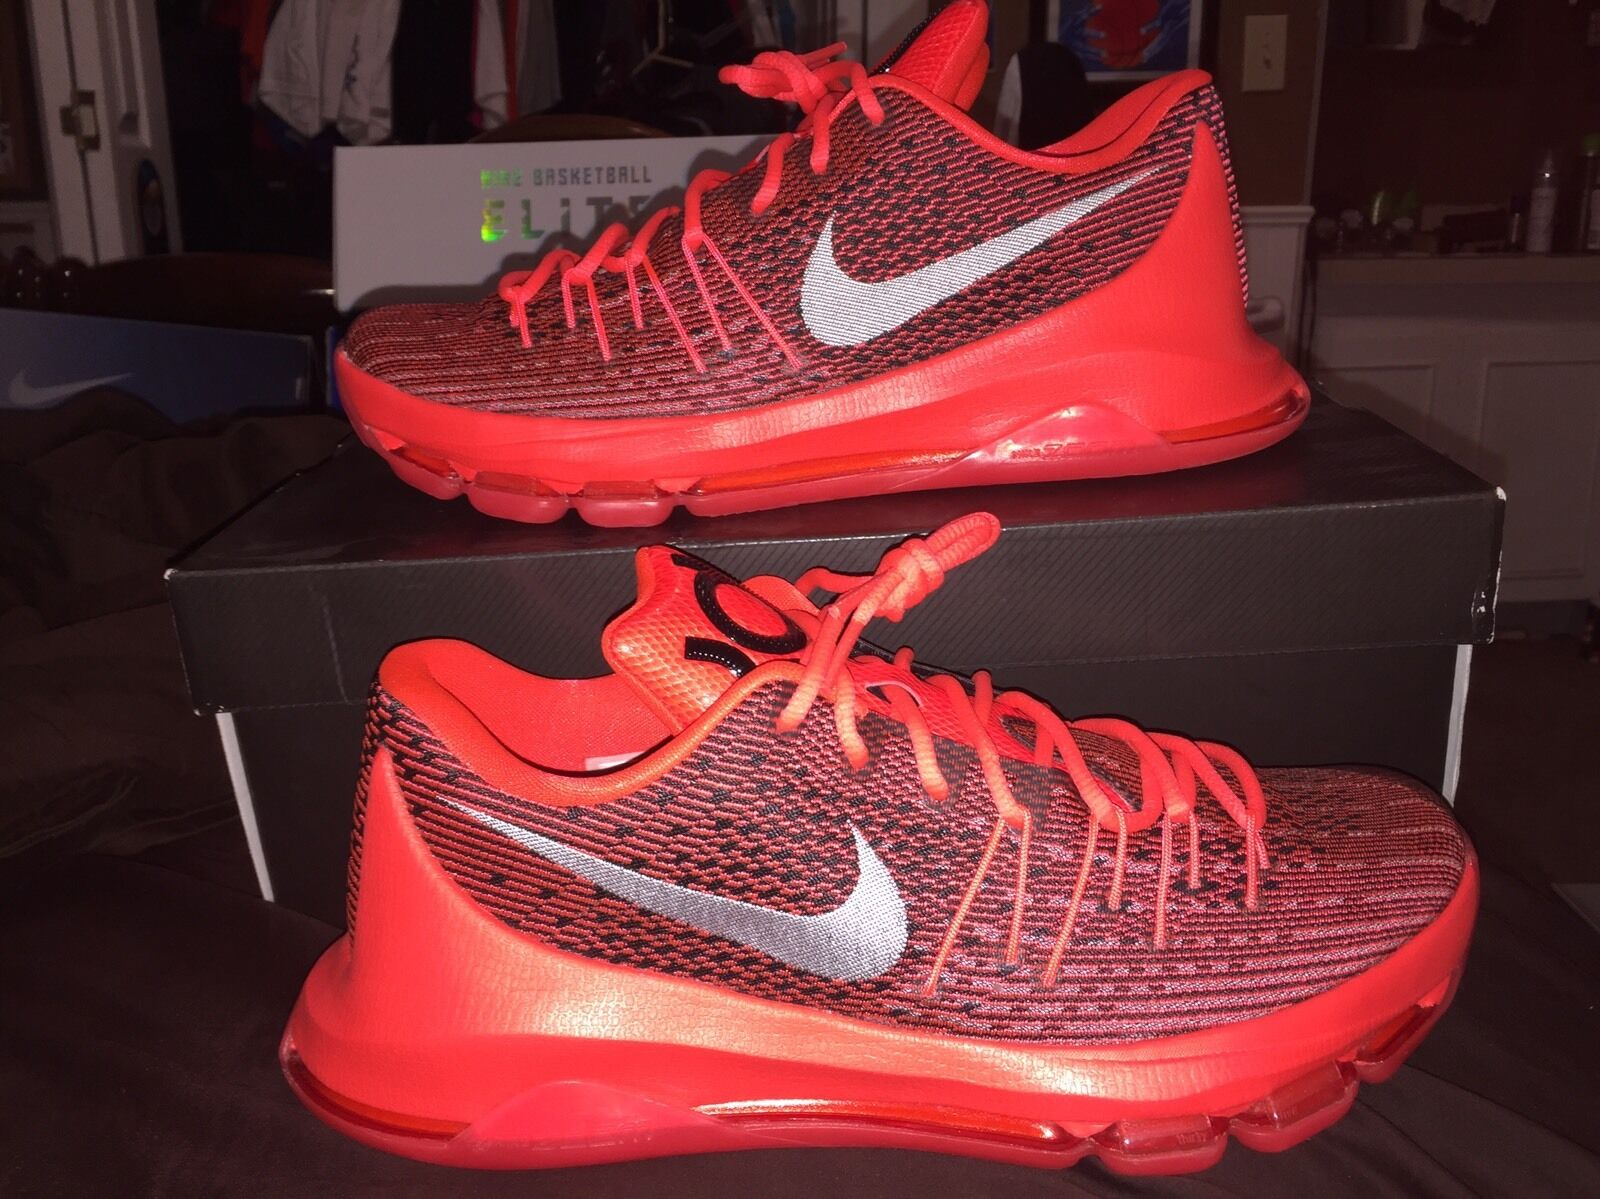 KD 8 749375 V8. Red. Size 9. 749375 8 610 538dba